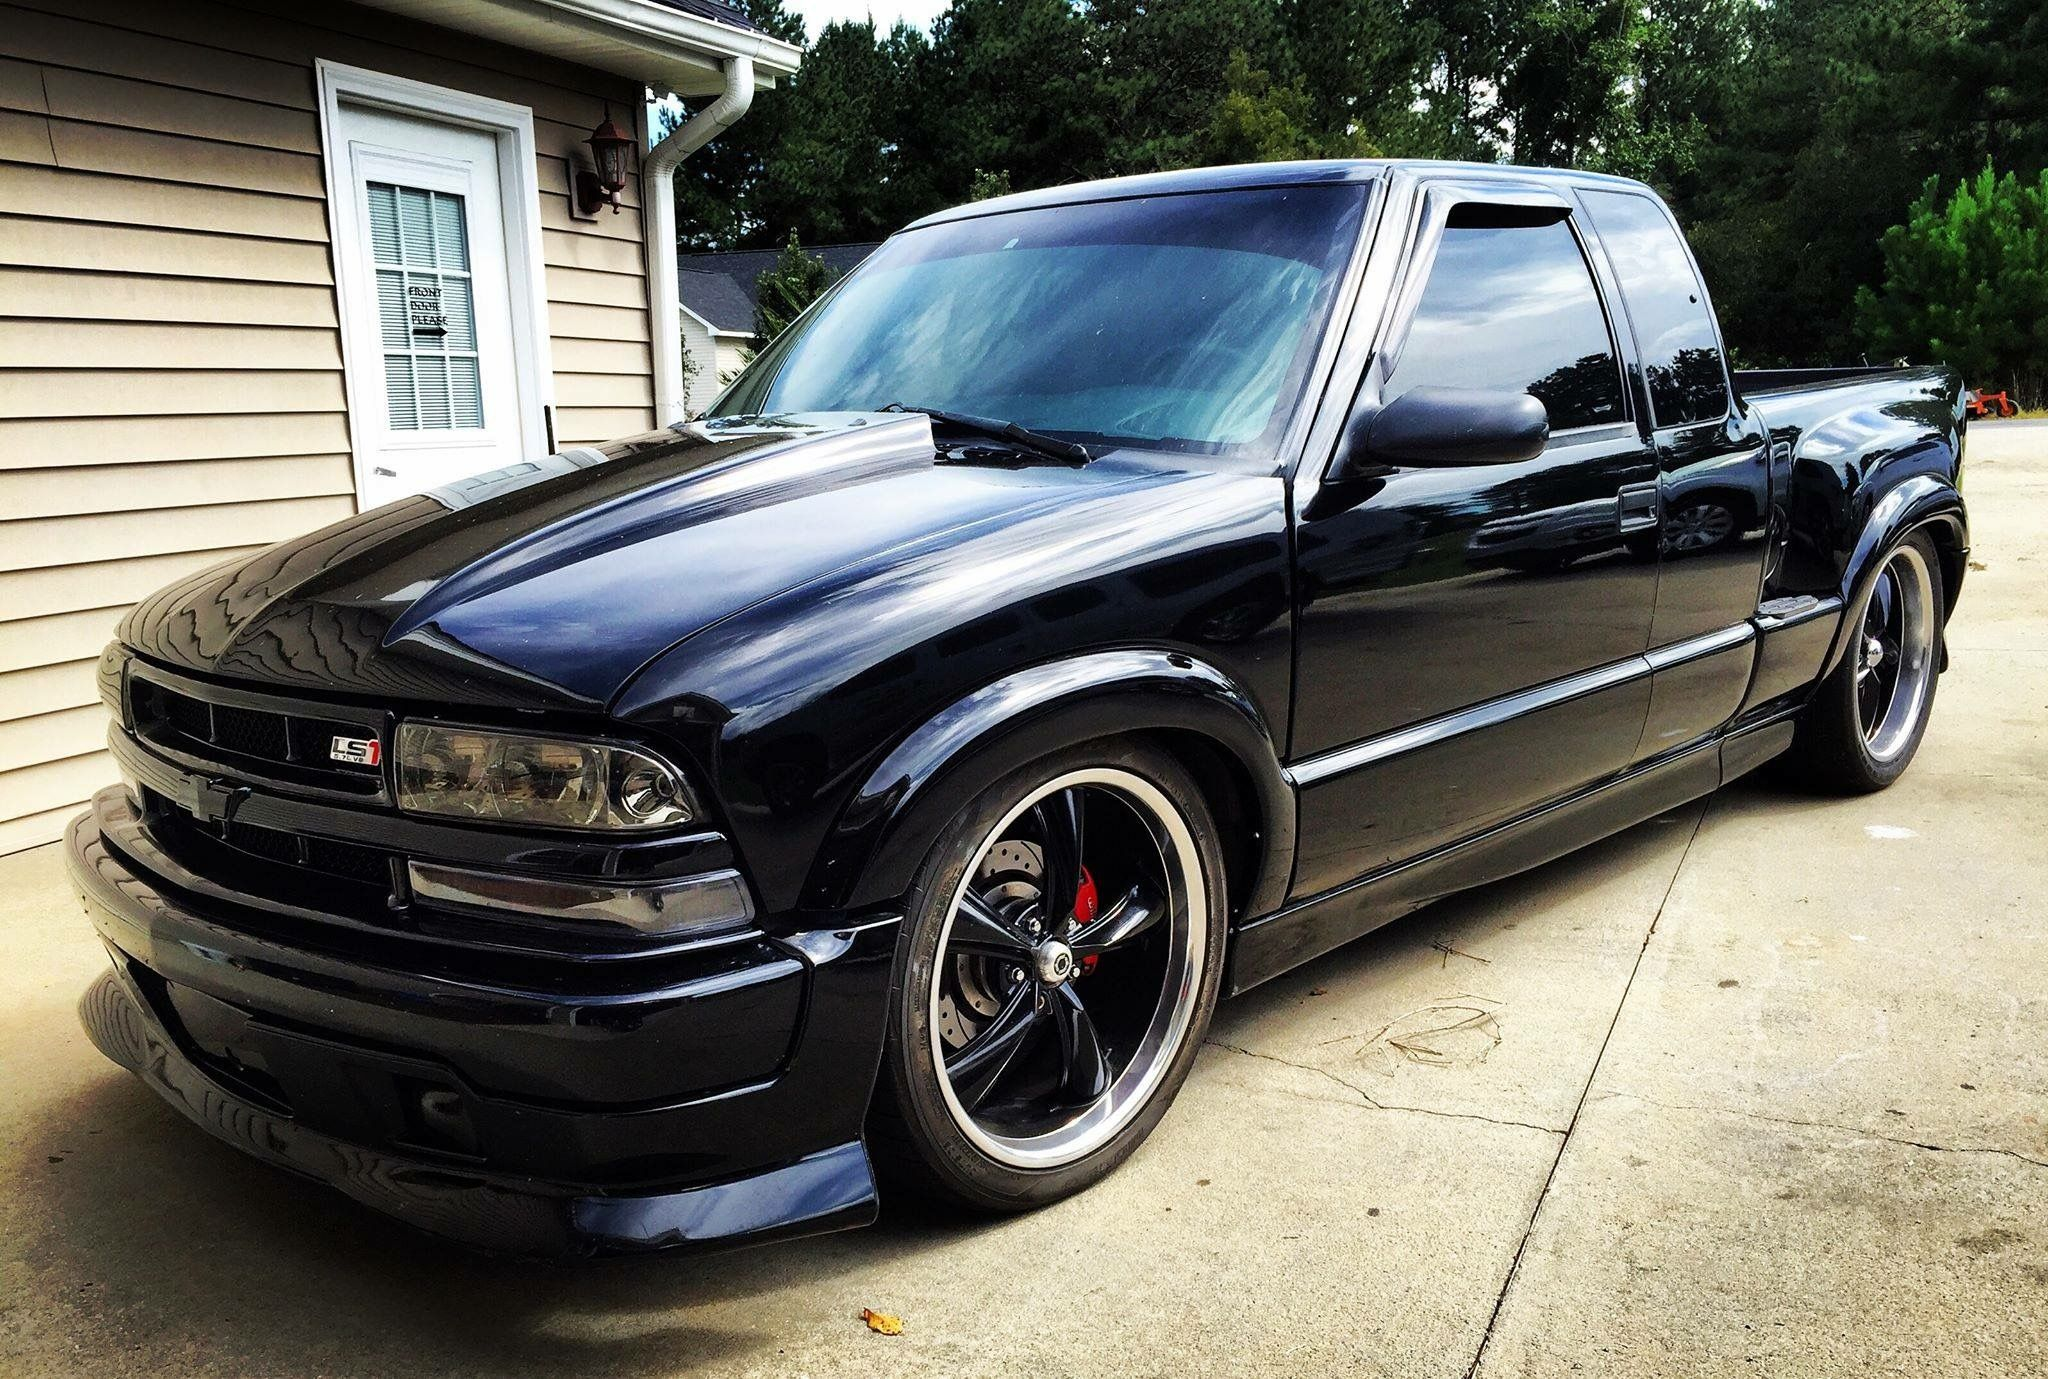 Chevy S10 Ls1 Swap Modified Lowered Bagged Chevy S10 Chevy S10 Xtreme S10 Truck